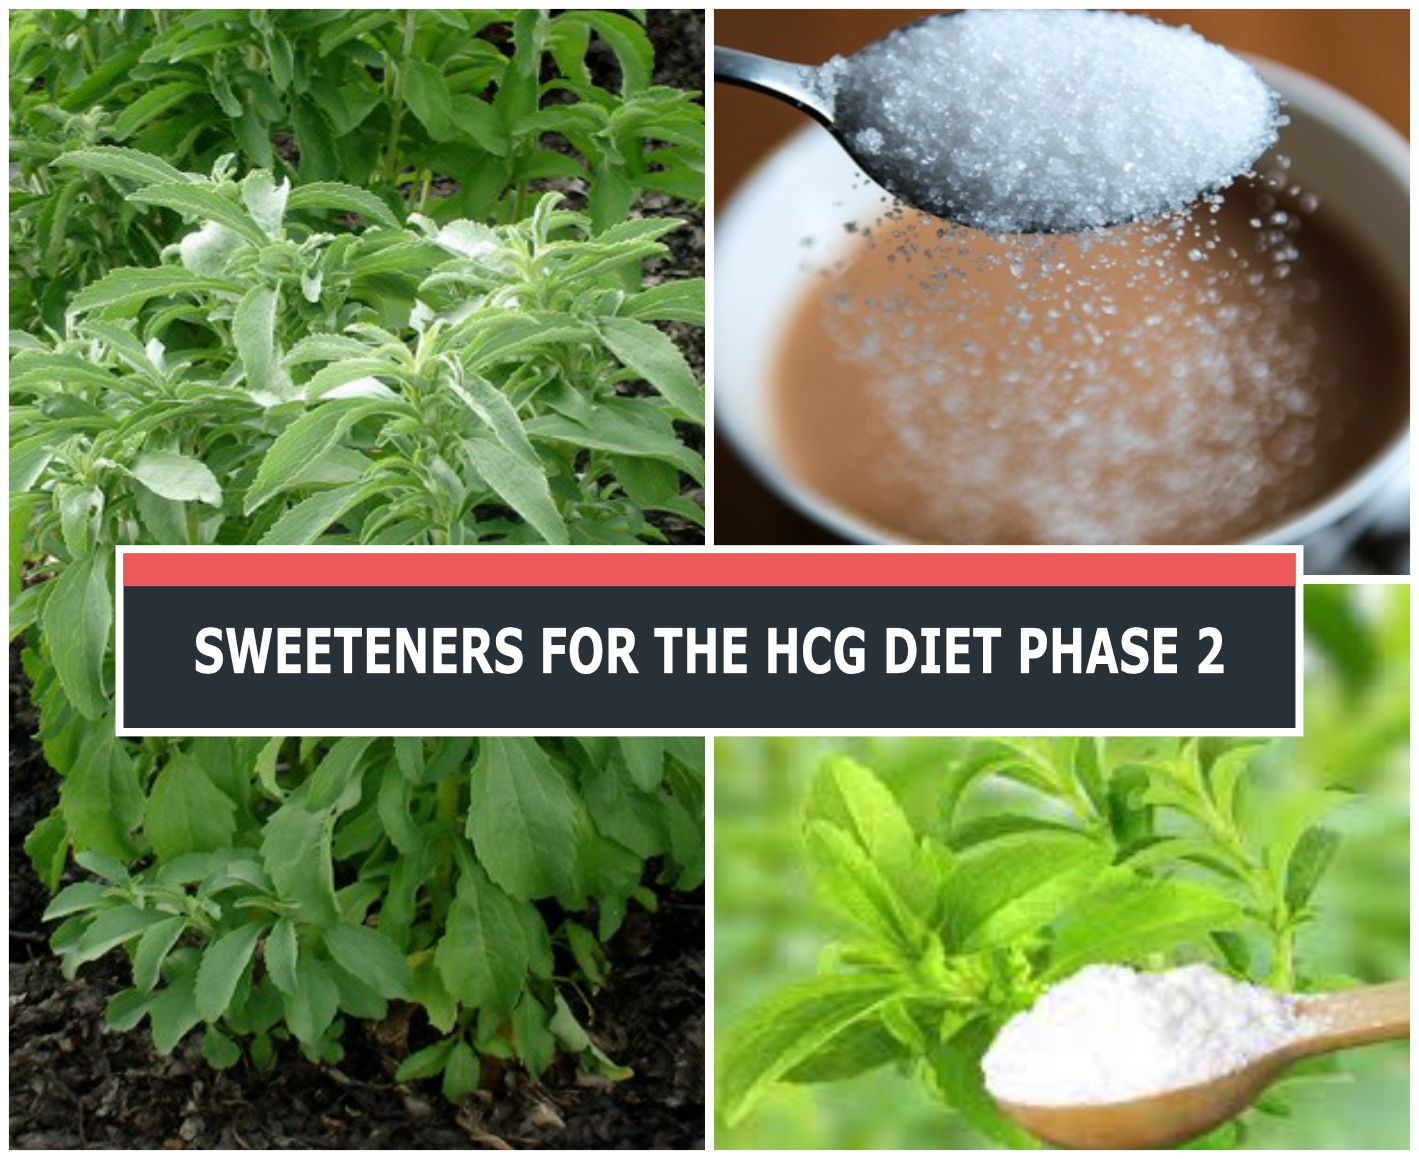 SWEETENERS FOR THE HCG DIET PHASE 2